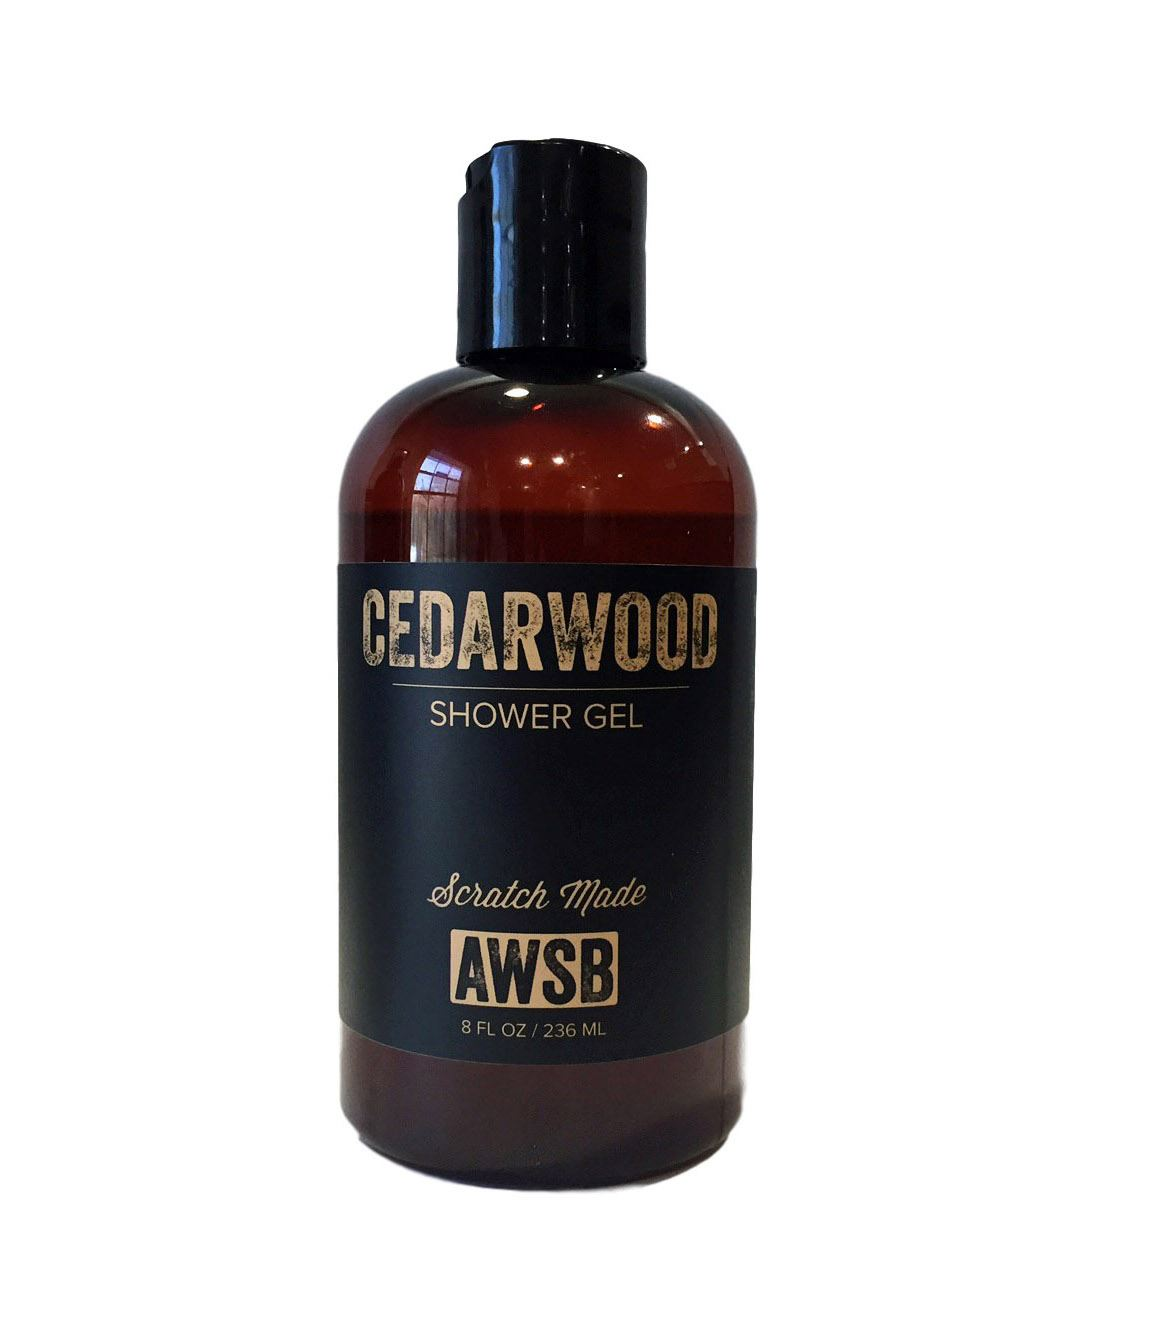 shower gel - cedarwood - NEW! - CEDG